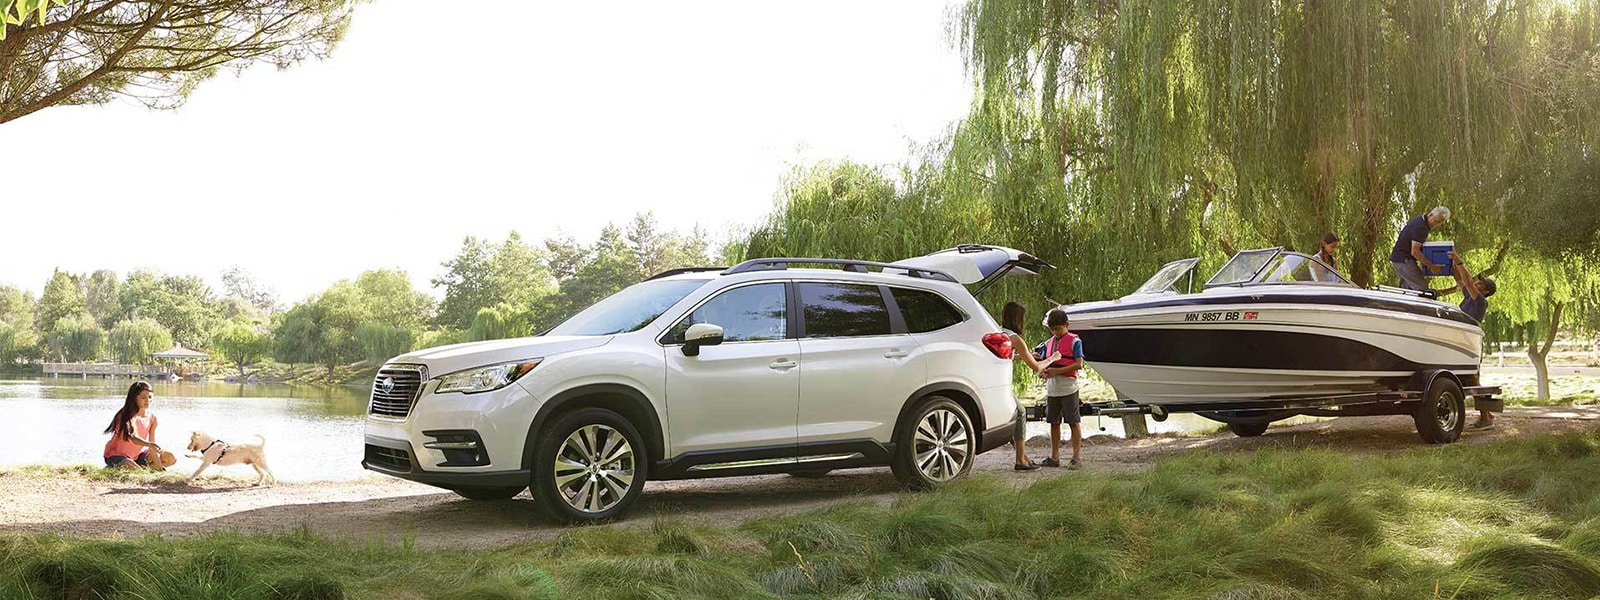 Subaru Ascent For Sale Near Cincinnati | Joseph Subaru